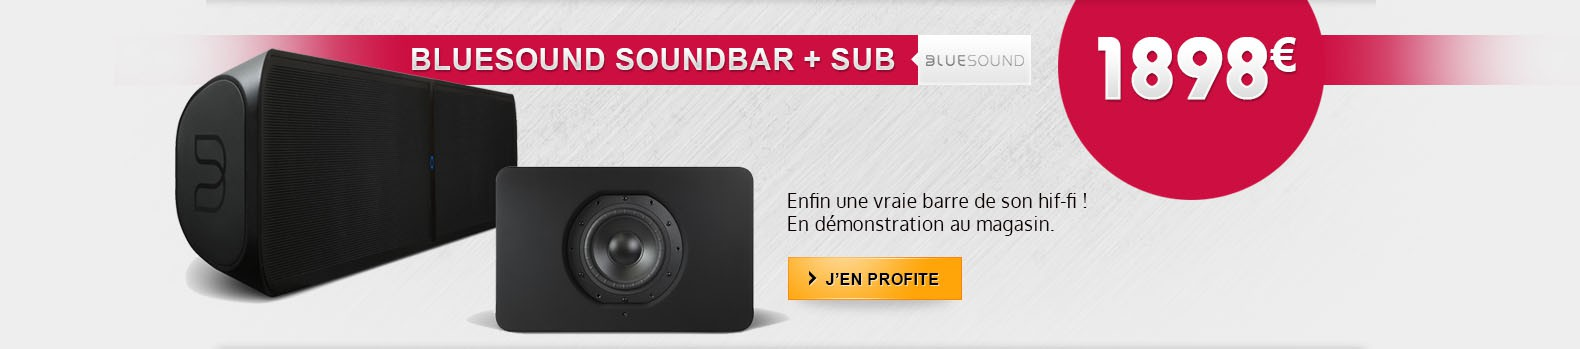 Nouveau barre sonore Bluesound Pulse